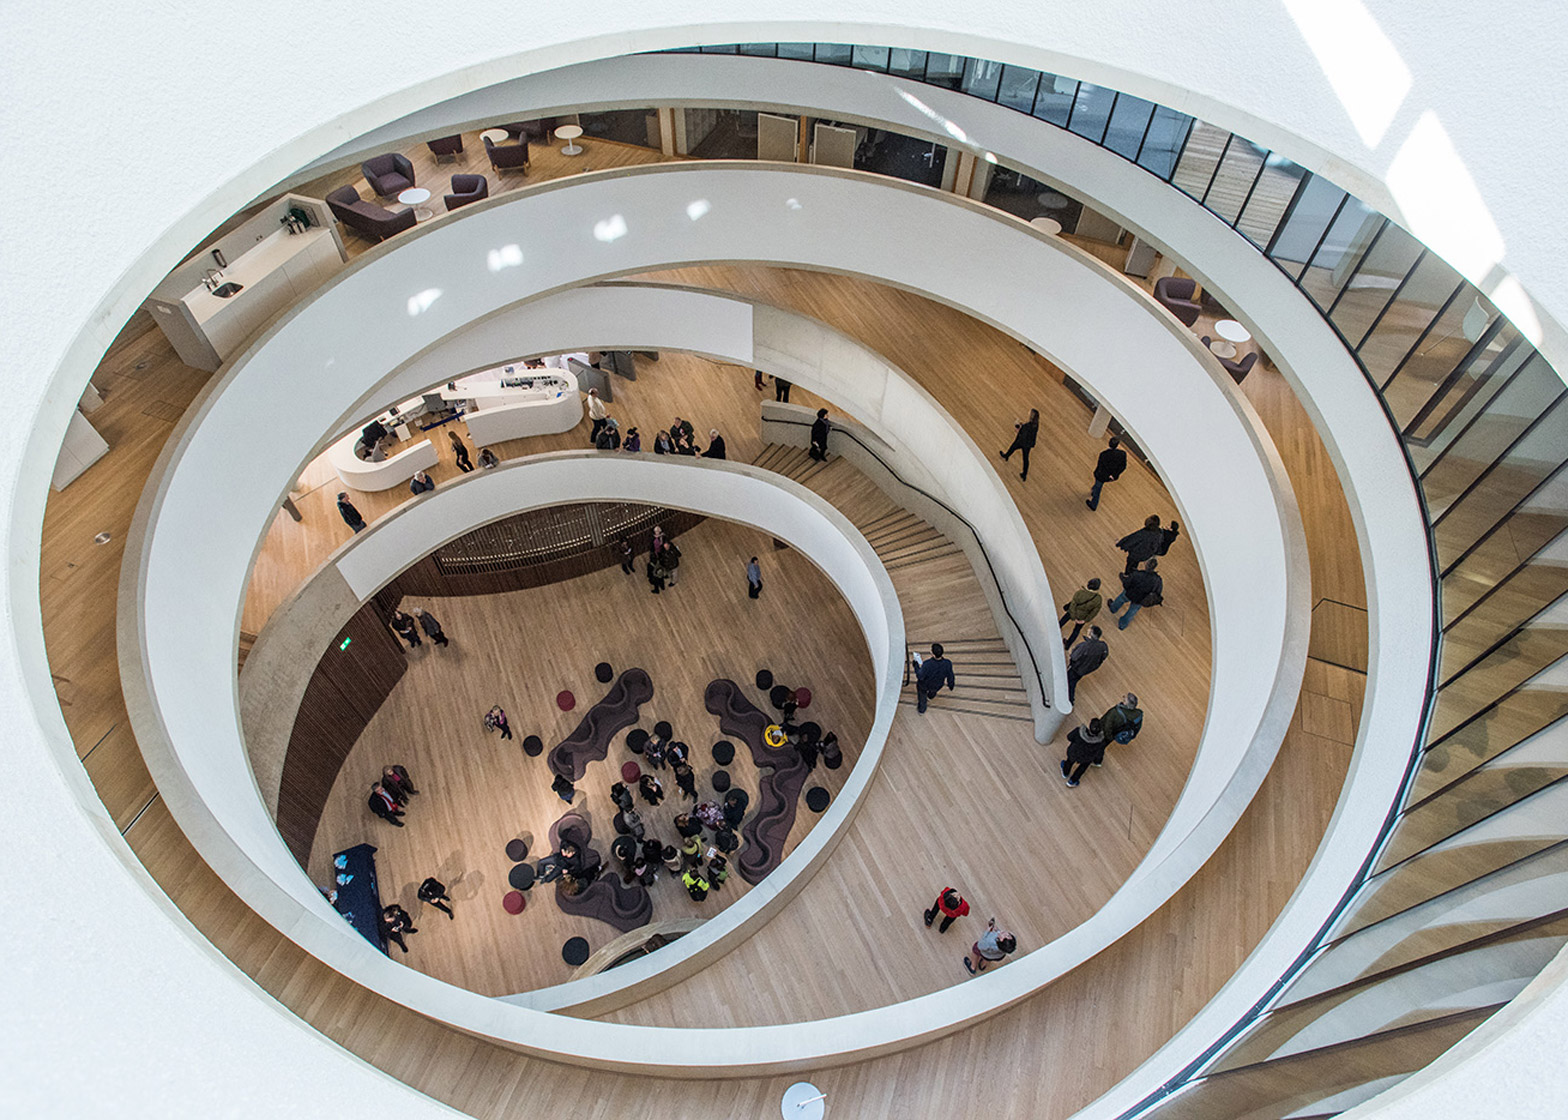 Blavatnik School of Government by Herzog & de Meuron. Photograph courtesy of the architects